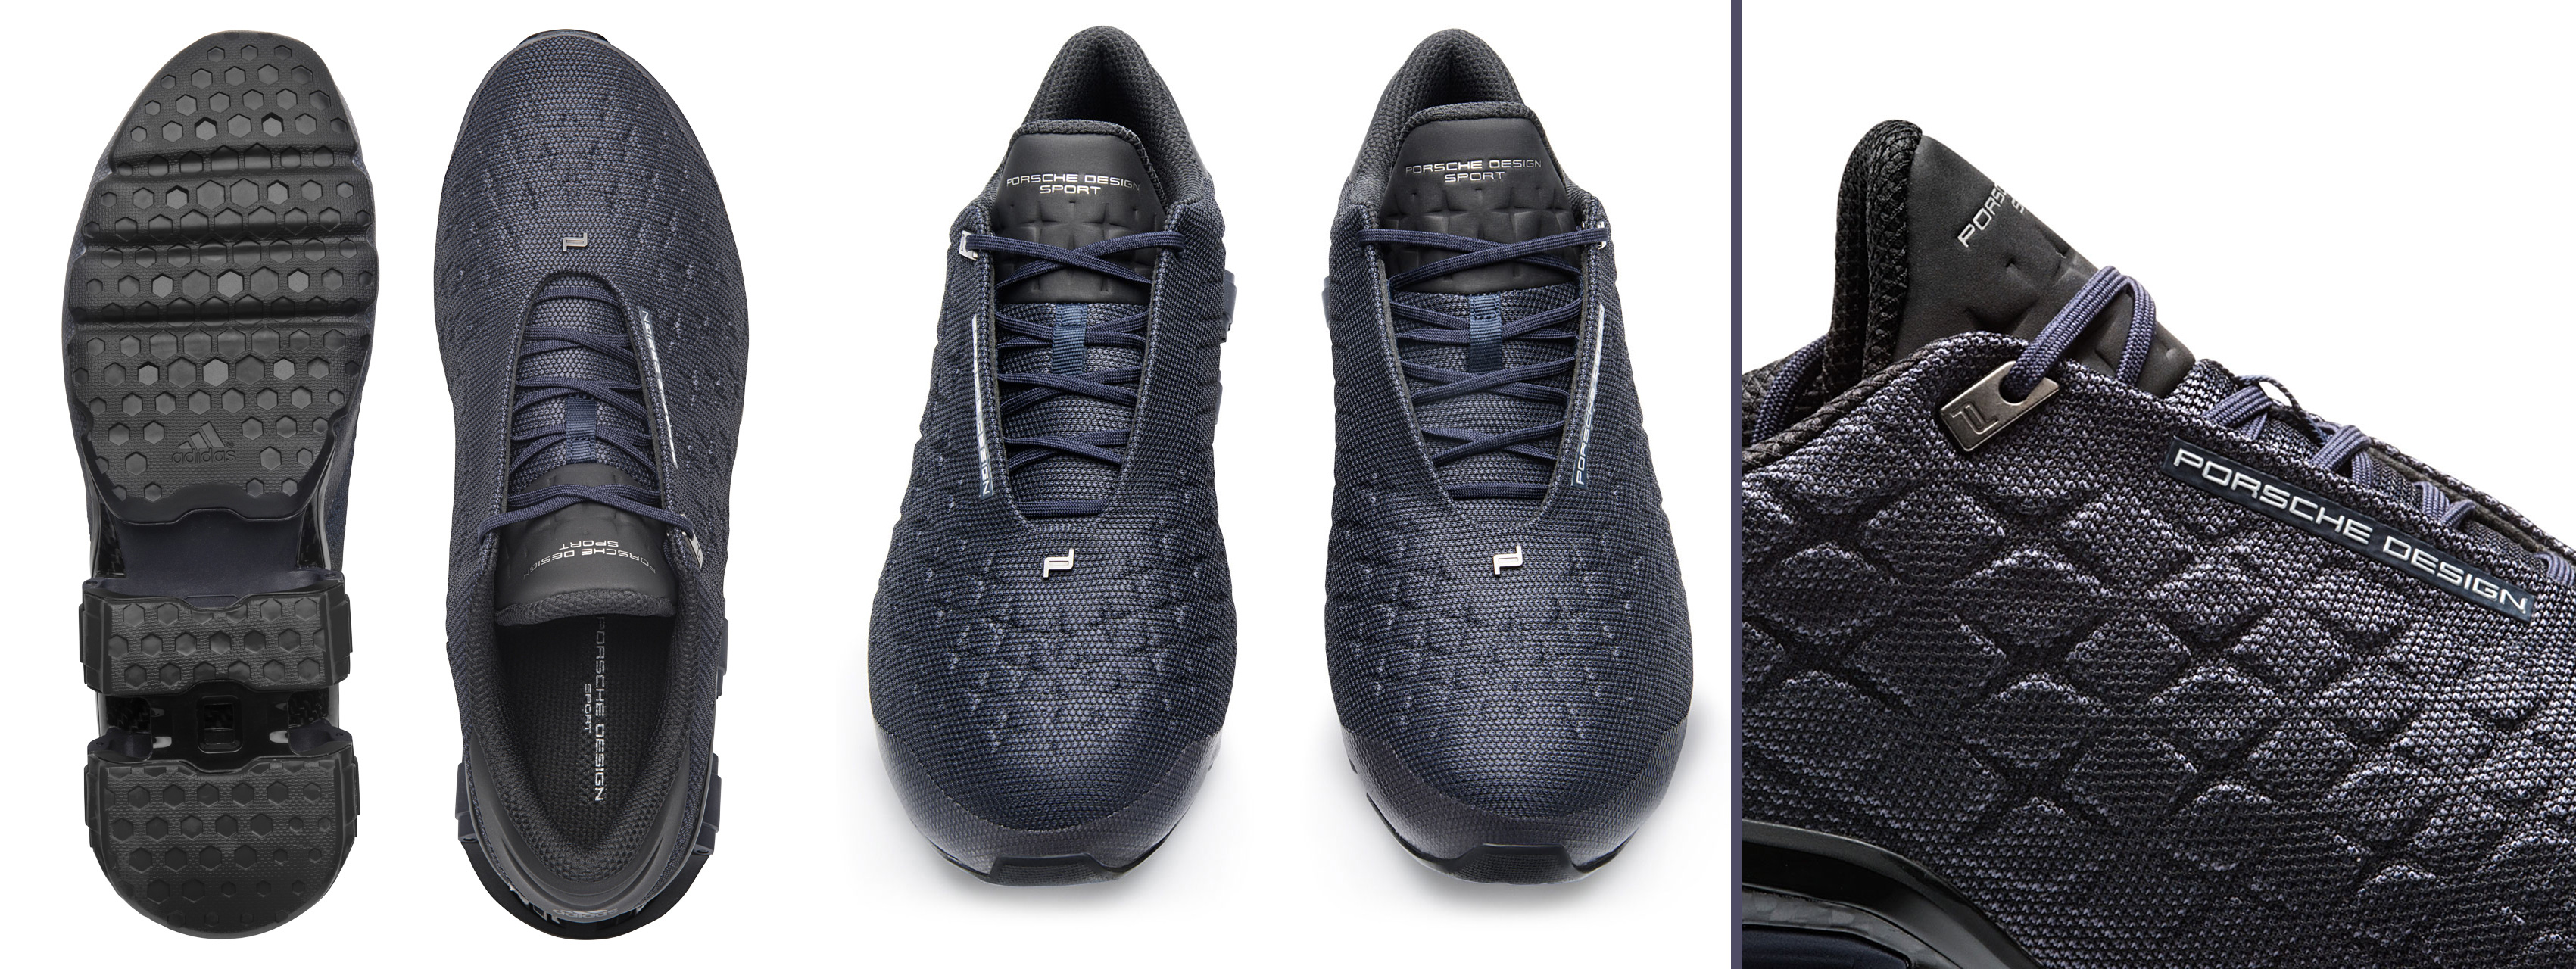 new concept 0ce8a 346c7 Porsche Design BOUNCE S4 Lux by adidas - Fashion Trendsetter